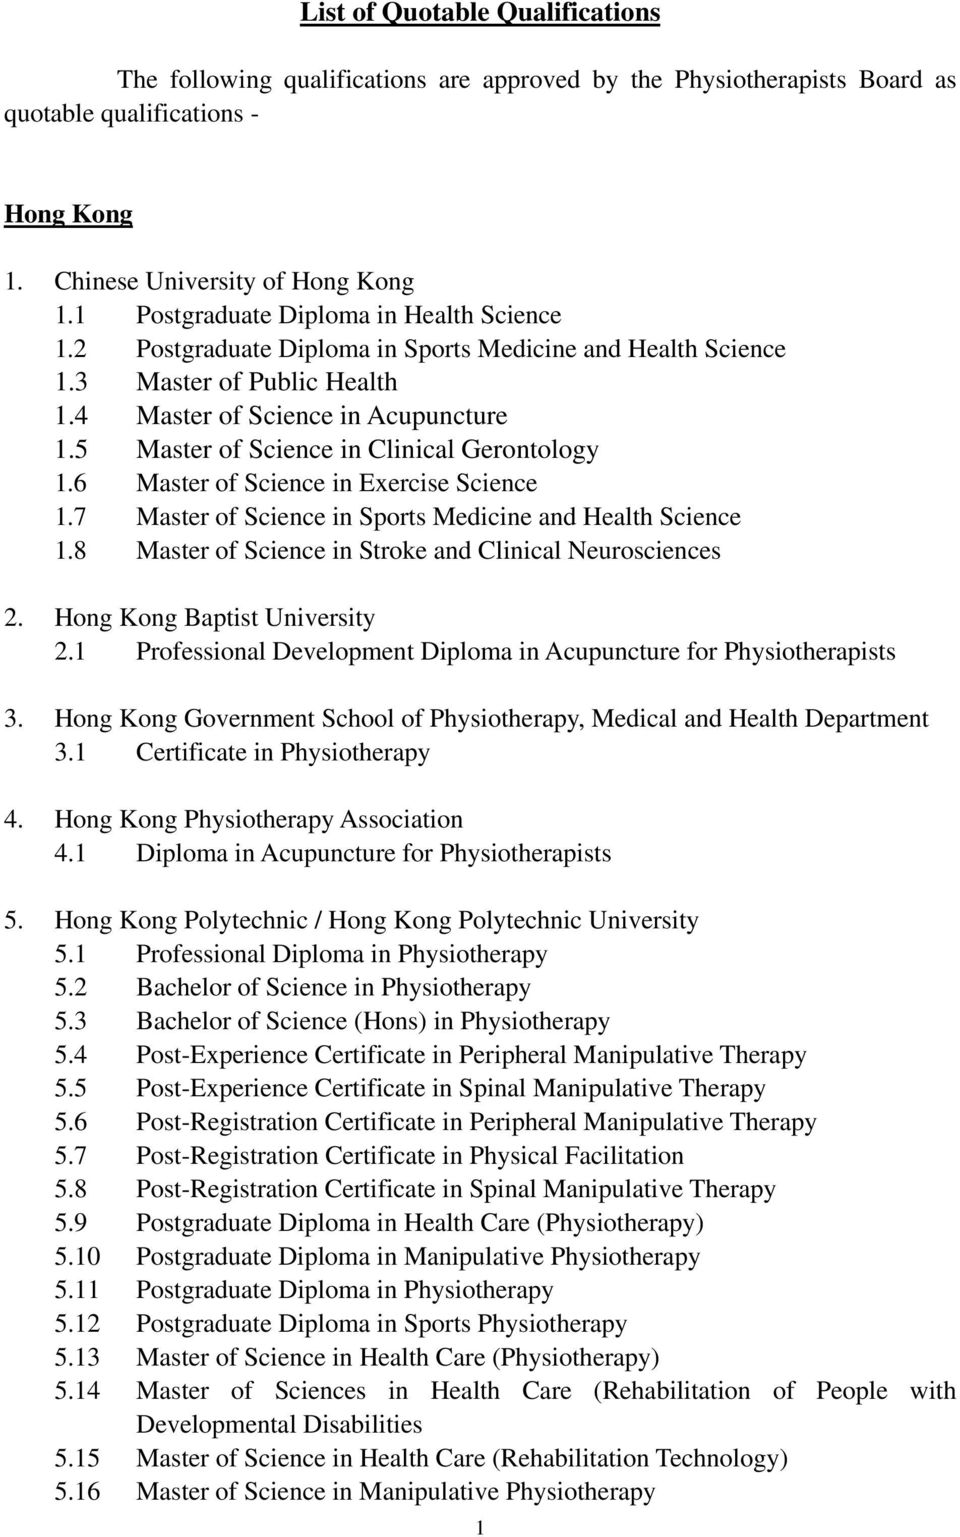 5 Master of Science in Clinical Gerontology 1.6 Master of Science in Exercise Science 1.7 Master of Science in Sports Medicine and Health Science 1.